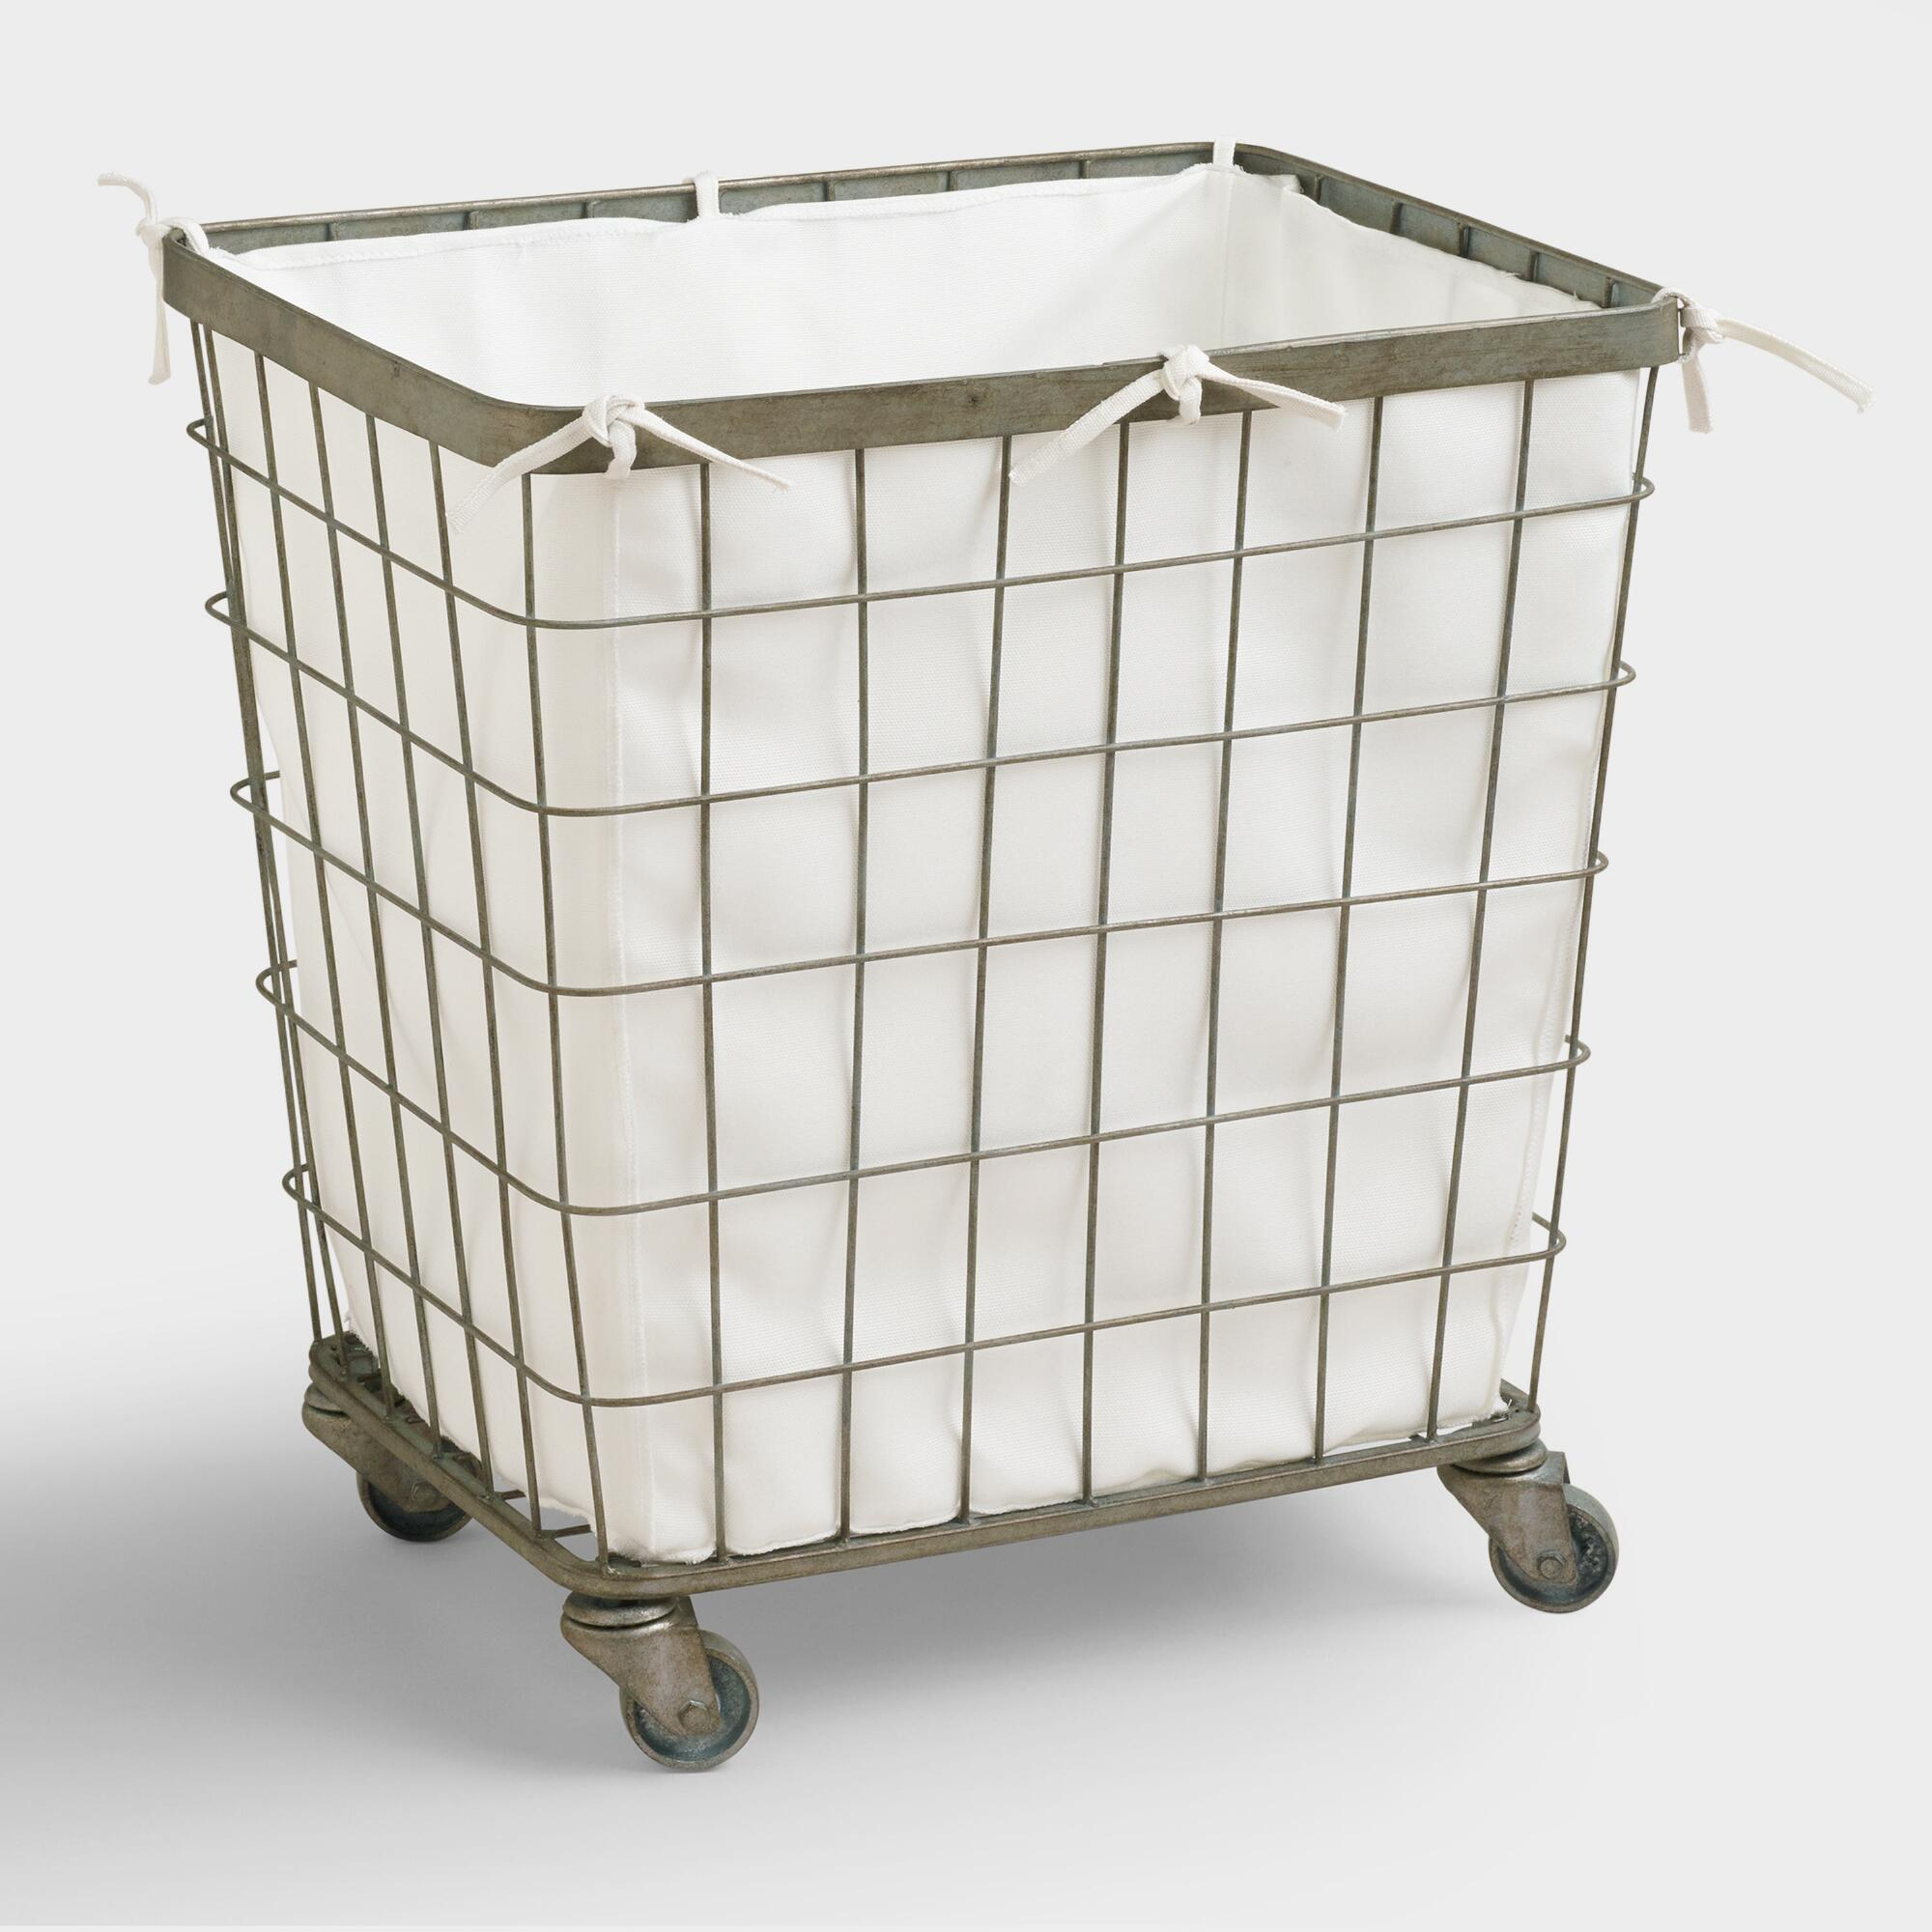 Image result for farmhouse laundry basket